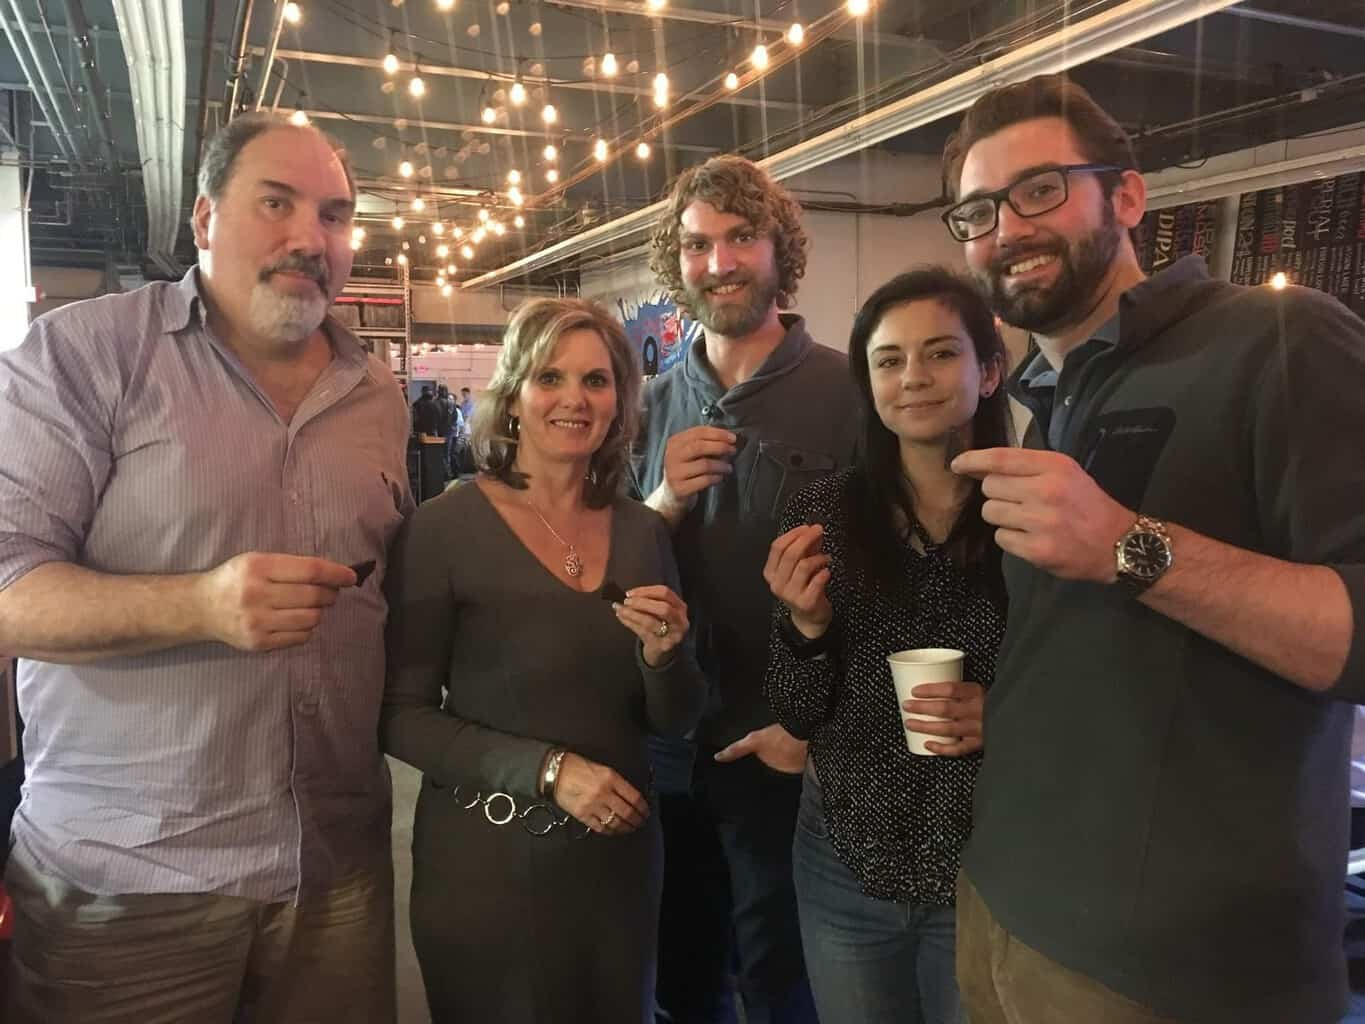 A group of five people smile at the camera while enjoying food on Off the Beaten Path Food Tour's Union Square Food Tour.